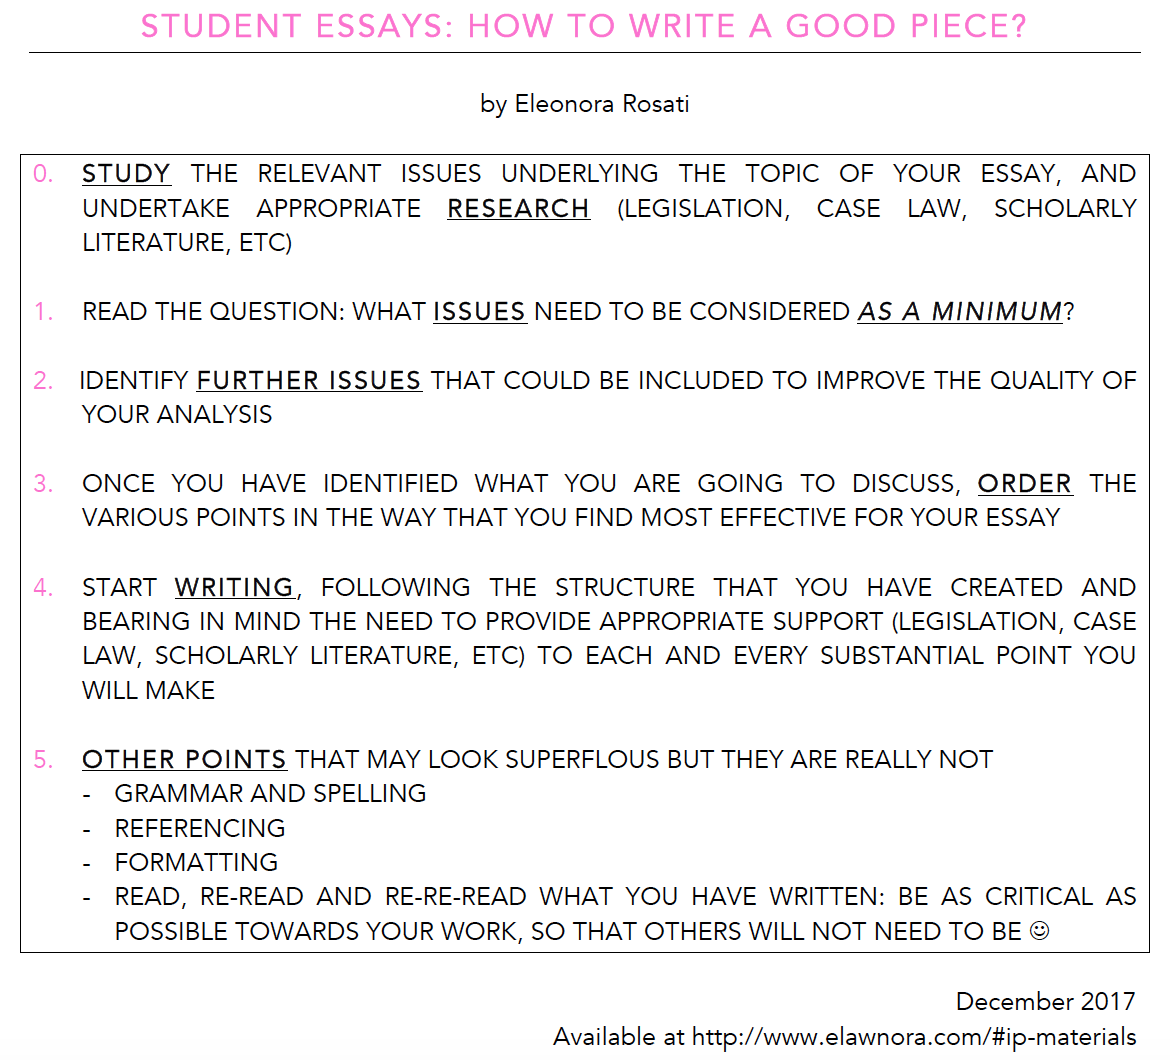 Write good essay